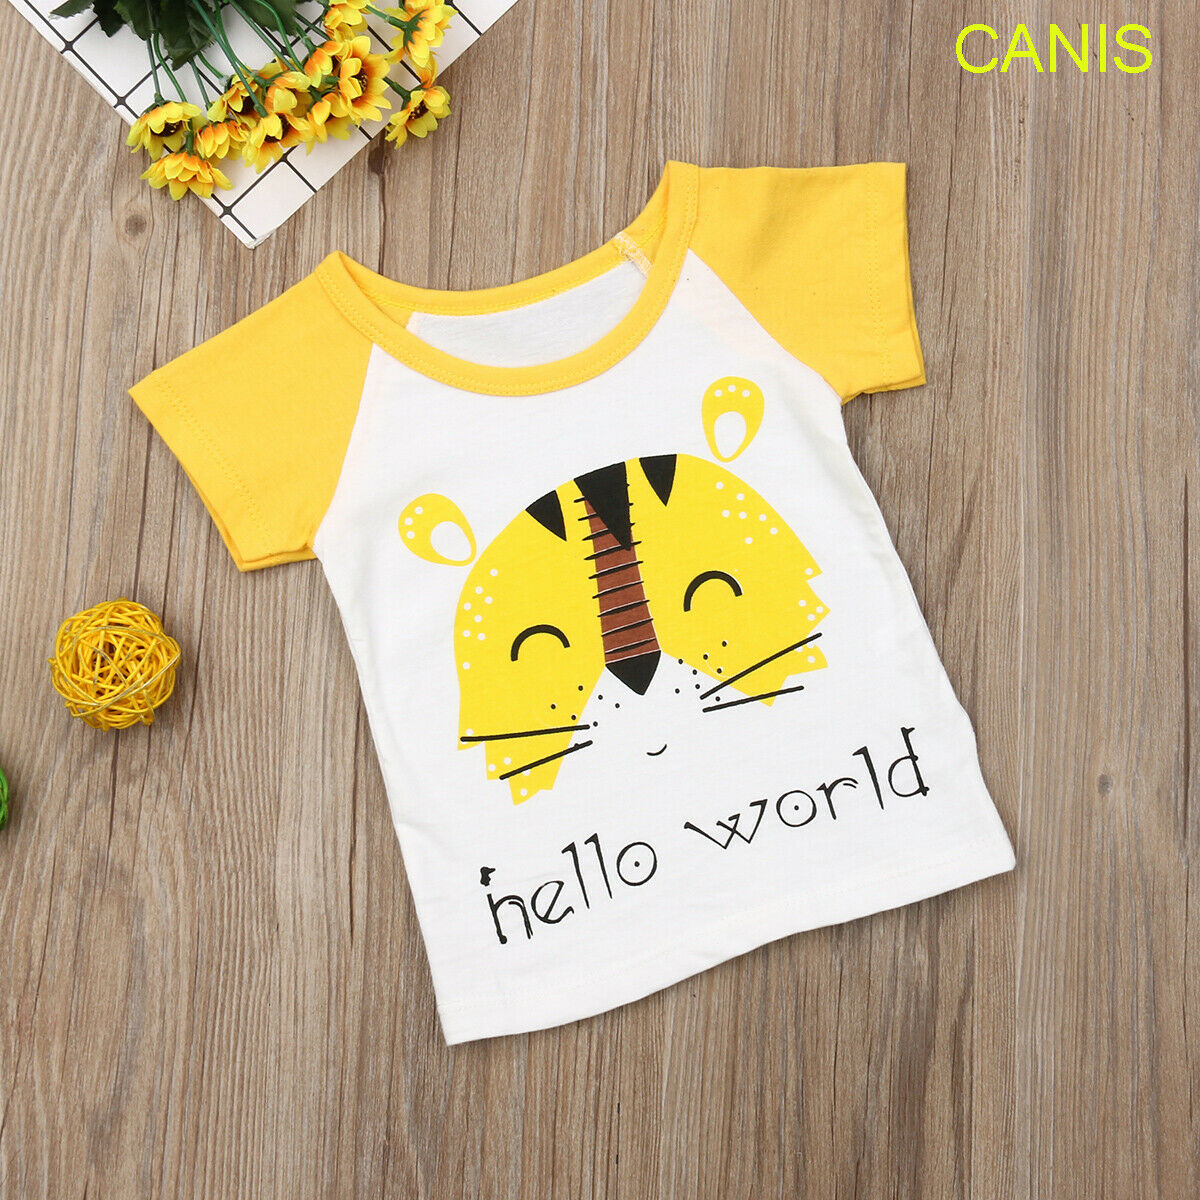 Personalized Name Baby Cotton Sleeper Gown Mashed Clothing Hi My Name is Rosie Everyone